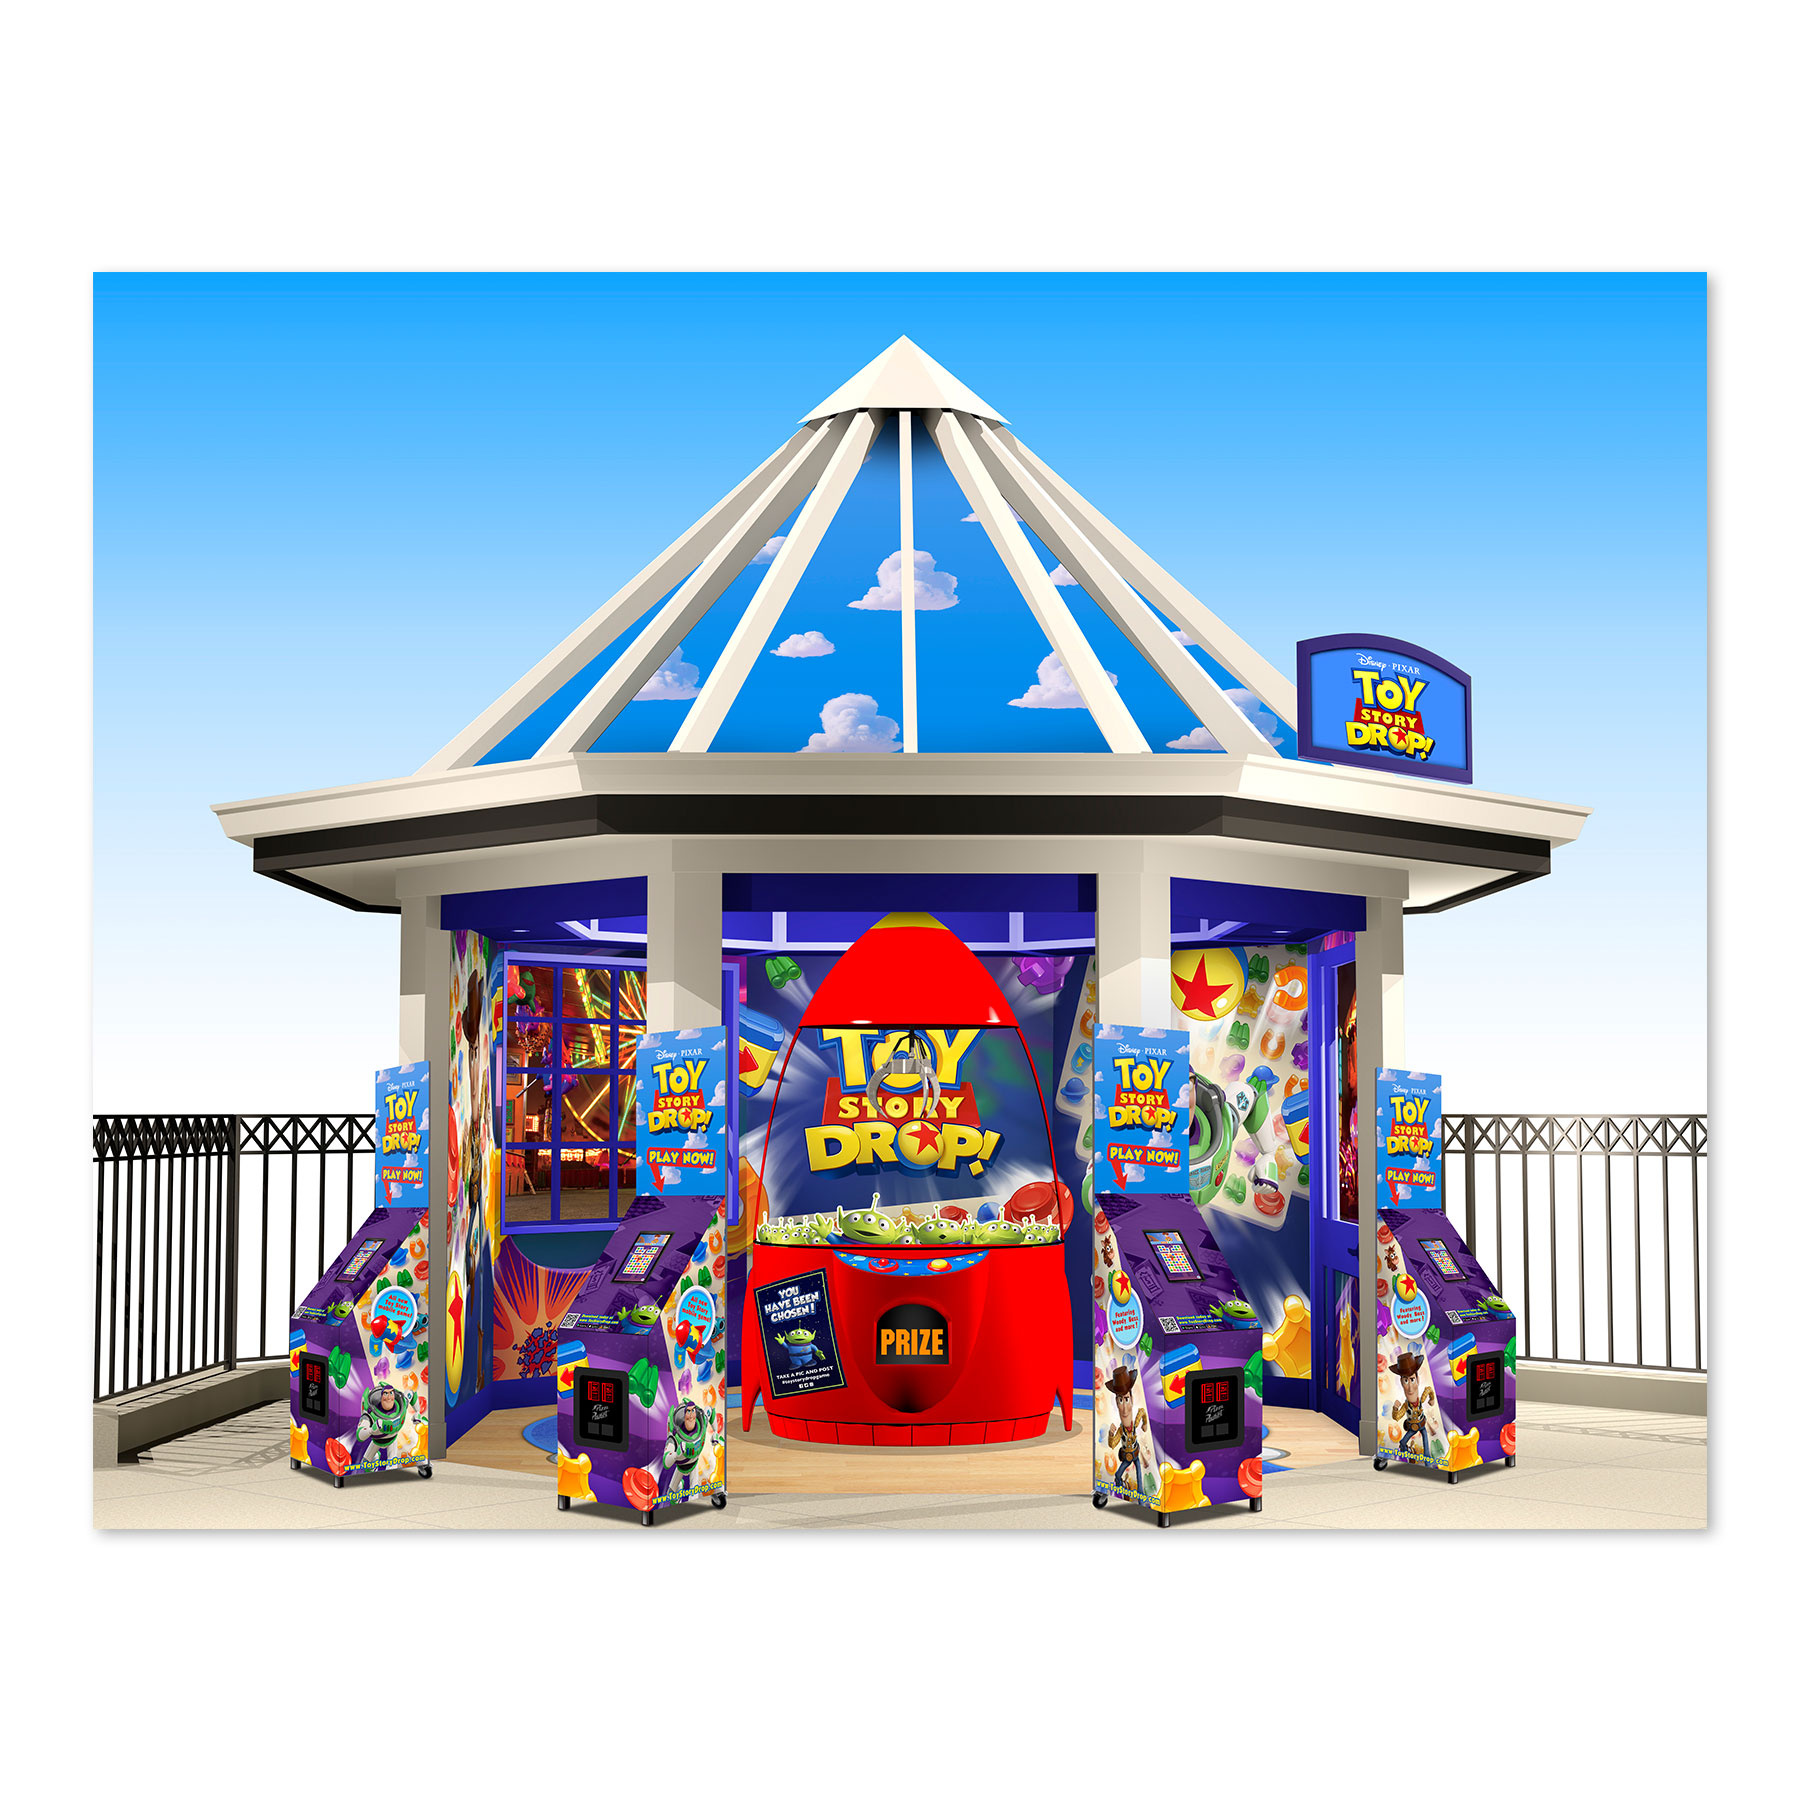 Toy Story 4 Gazebo For Toy Drop Game